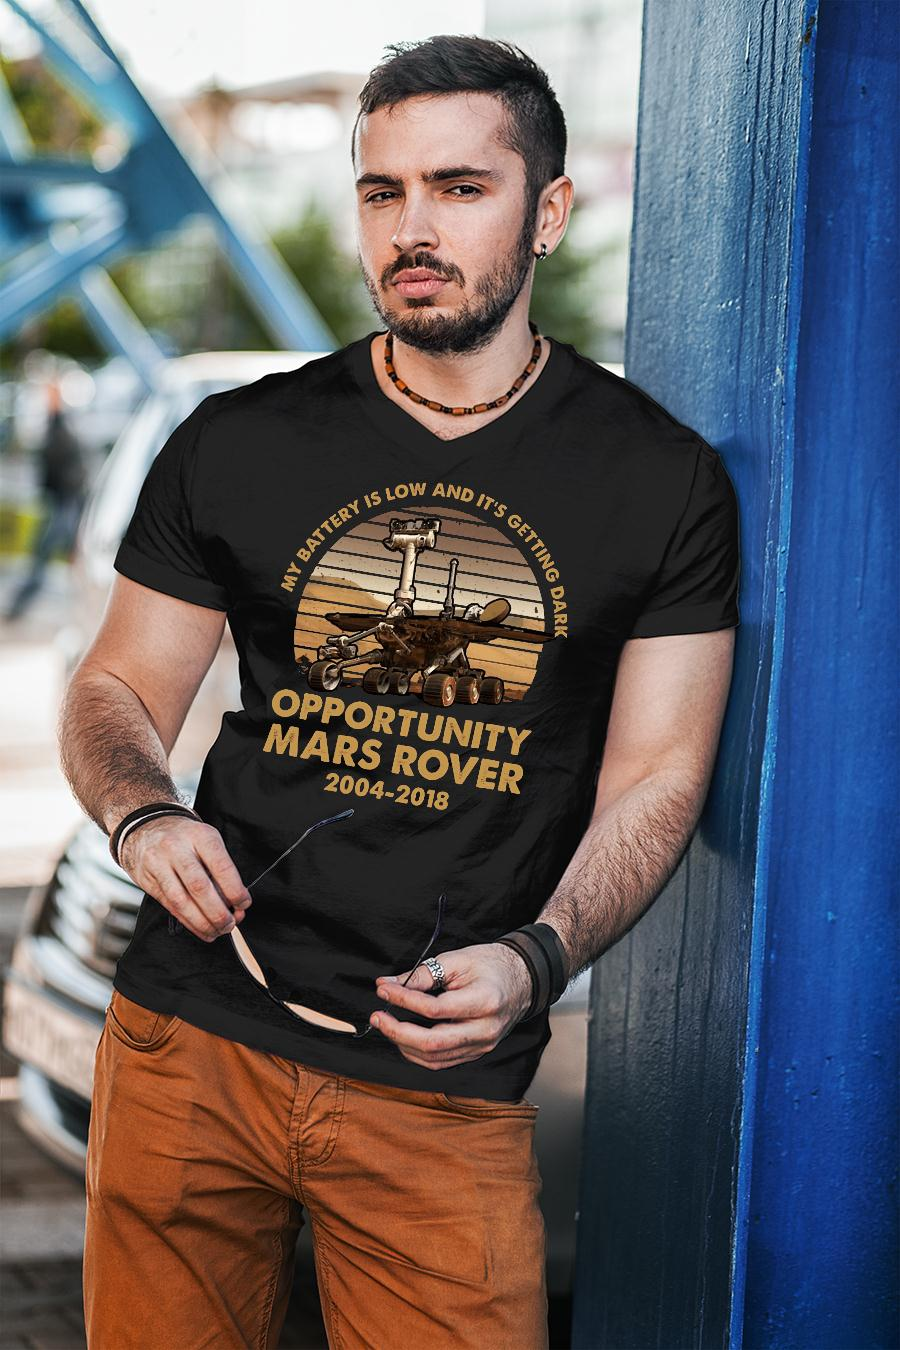 My battery is low and it's getting dark opportunity Mars Rover shirt unisex